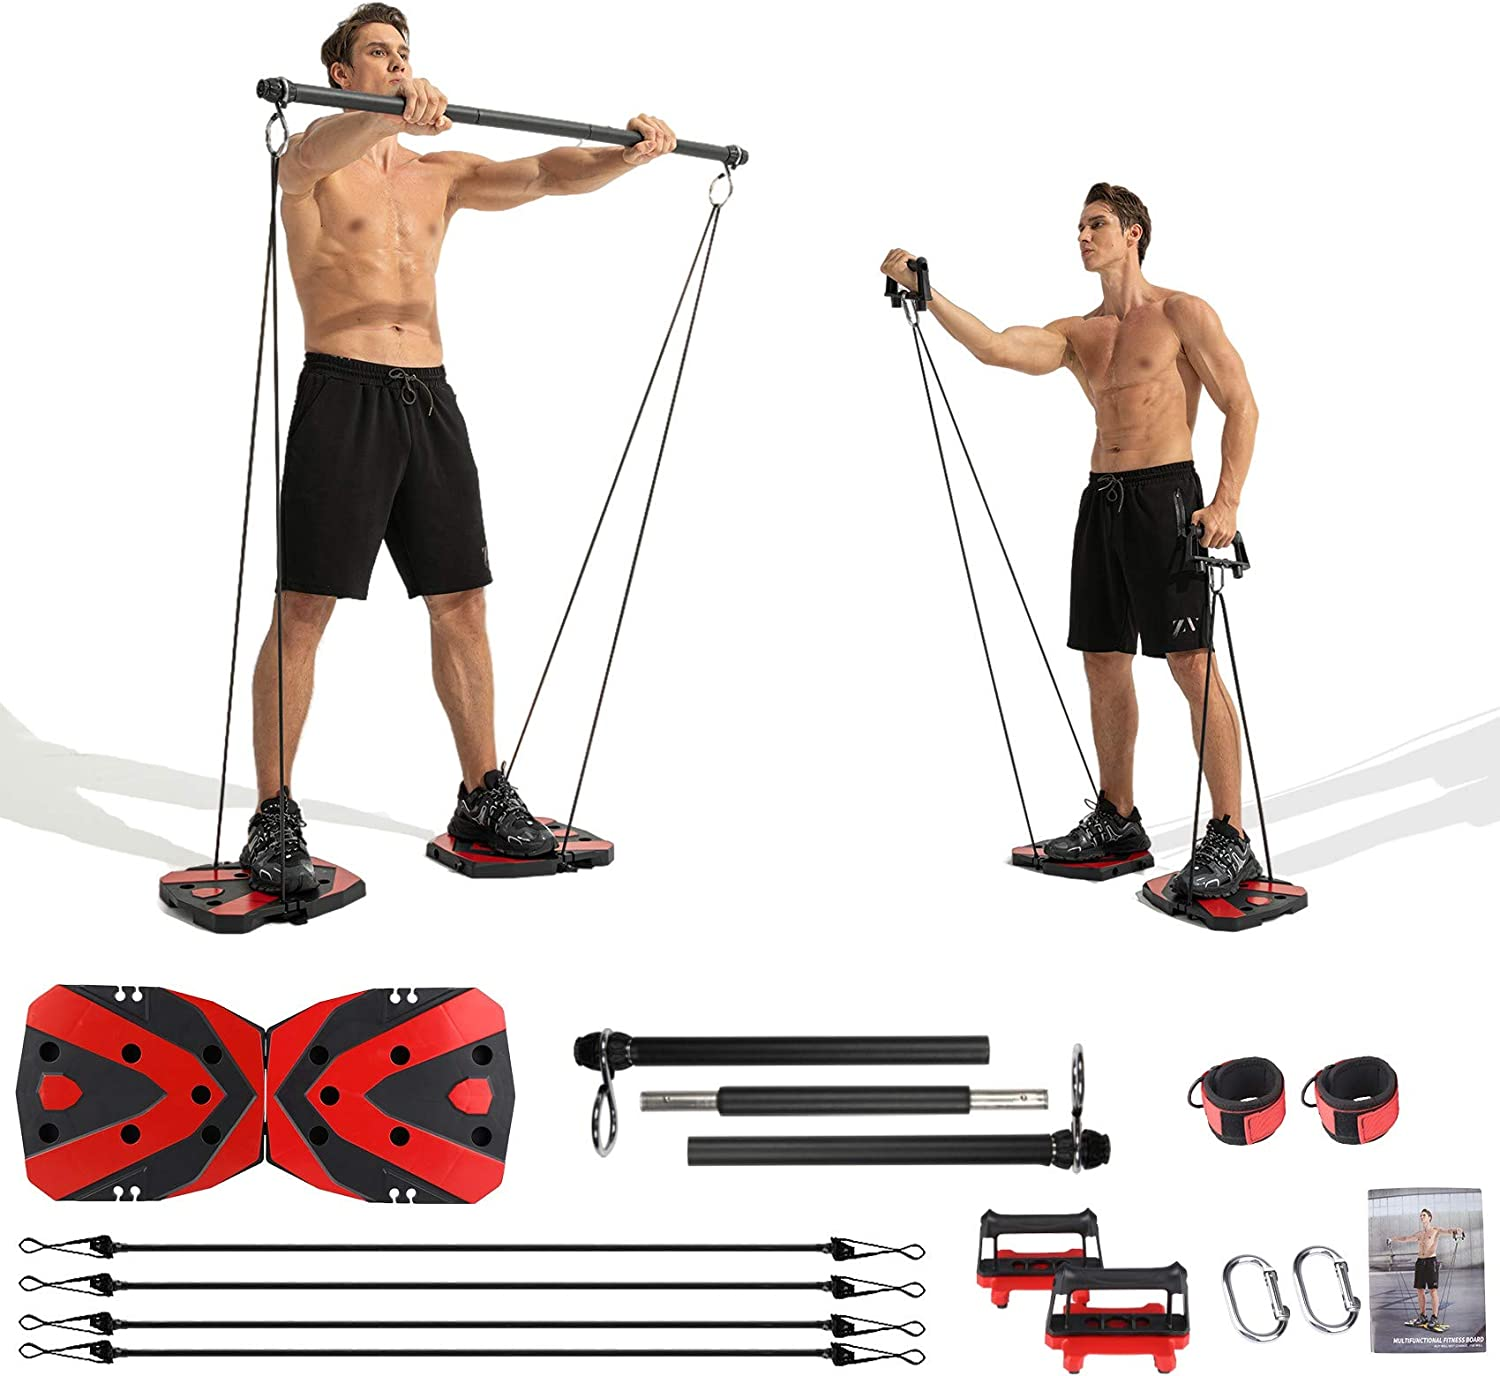 Portable Home Gym with Heavy Resistance Bands Ab Roller Wheel Pulleys and More Full-Body Workout Equipment for Home Gym Equipment Build Muscle and Burn Fat Men Women